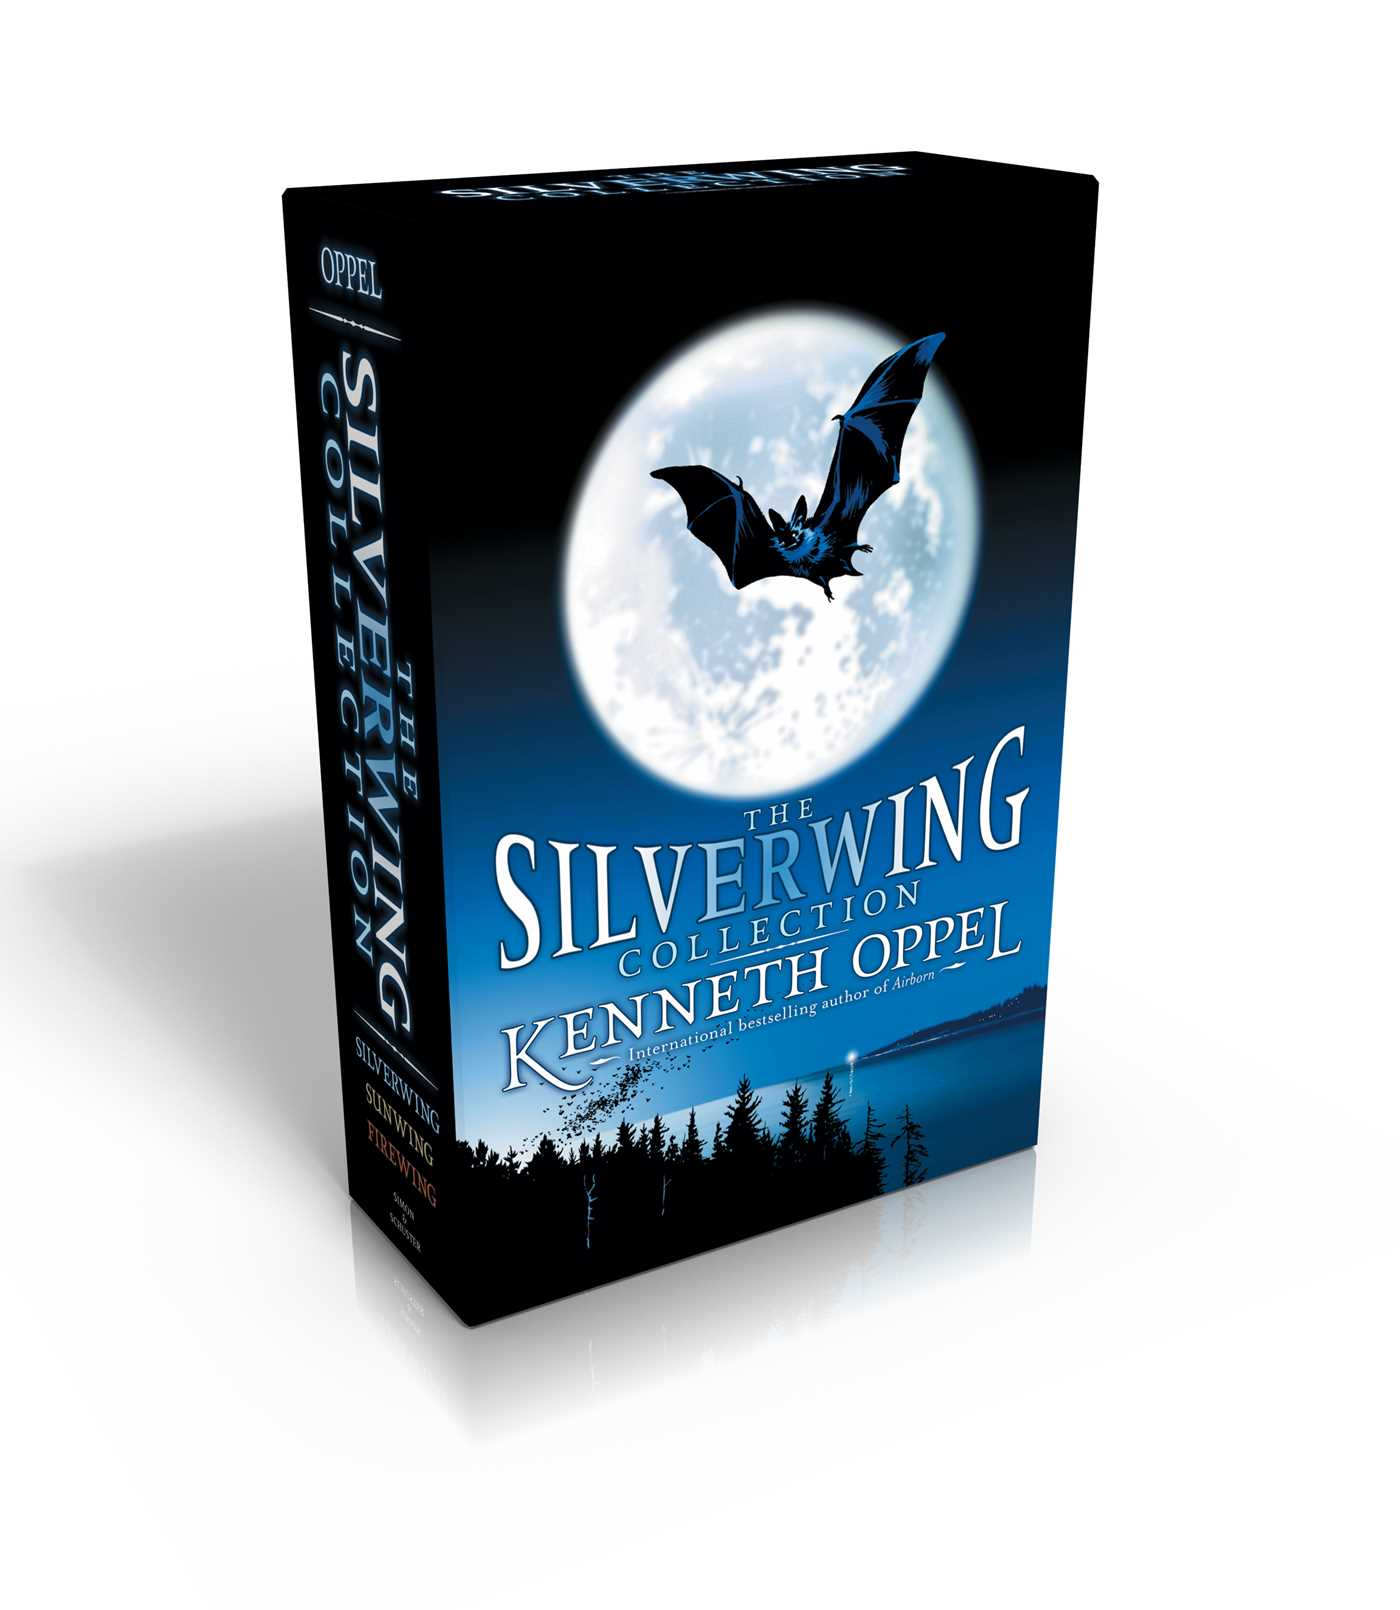 Silverwing collection 9781481427258 hr